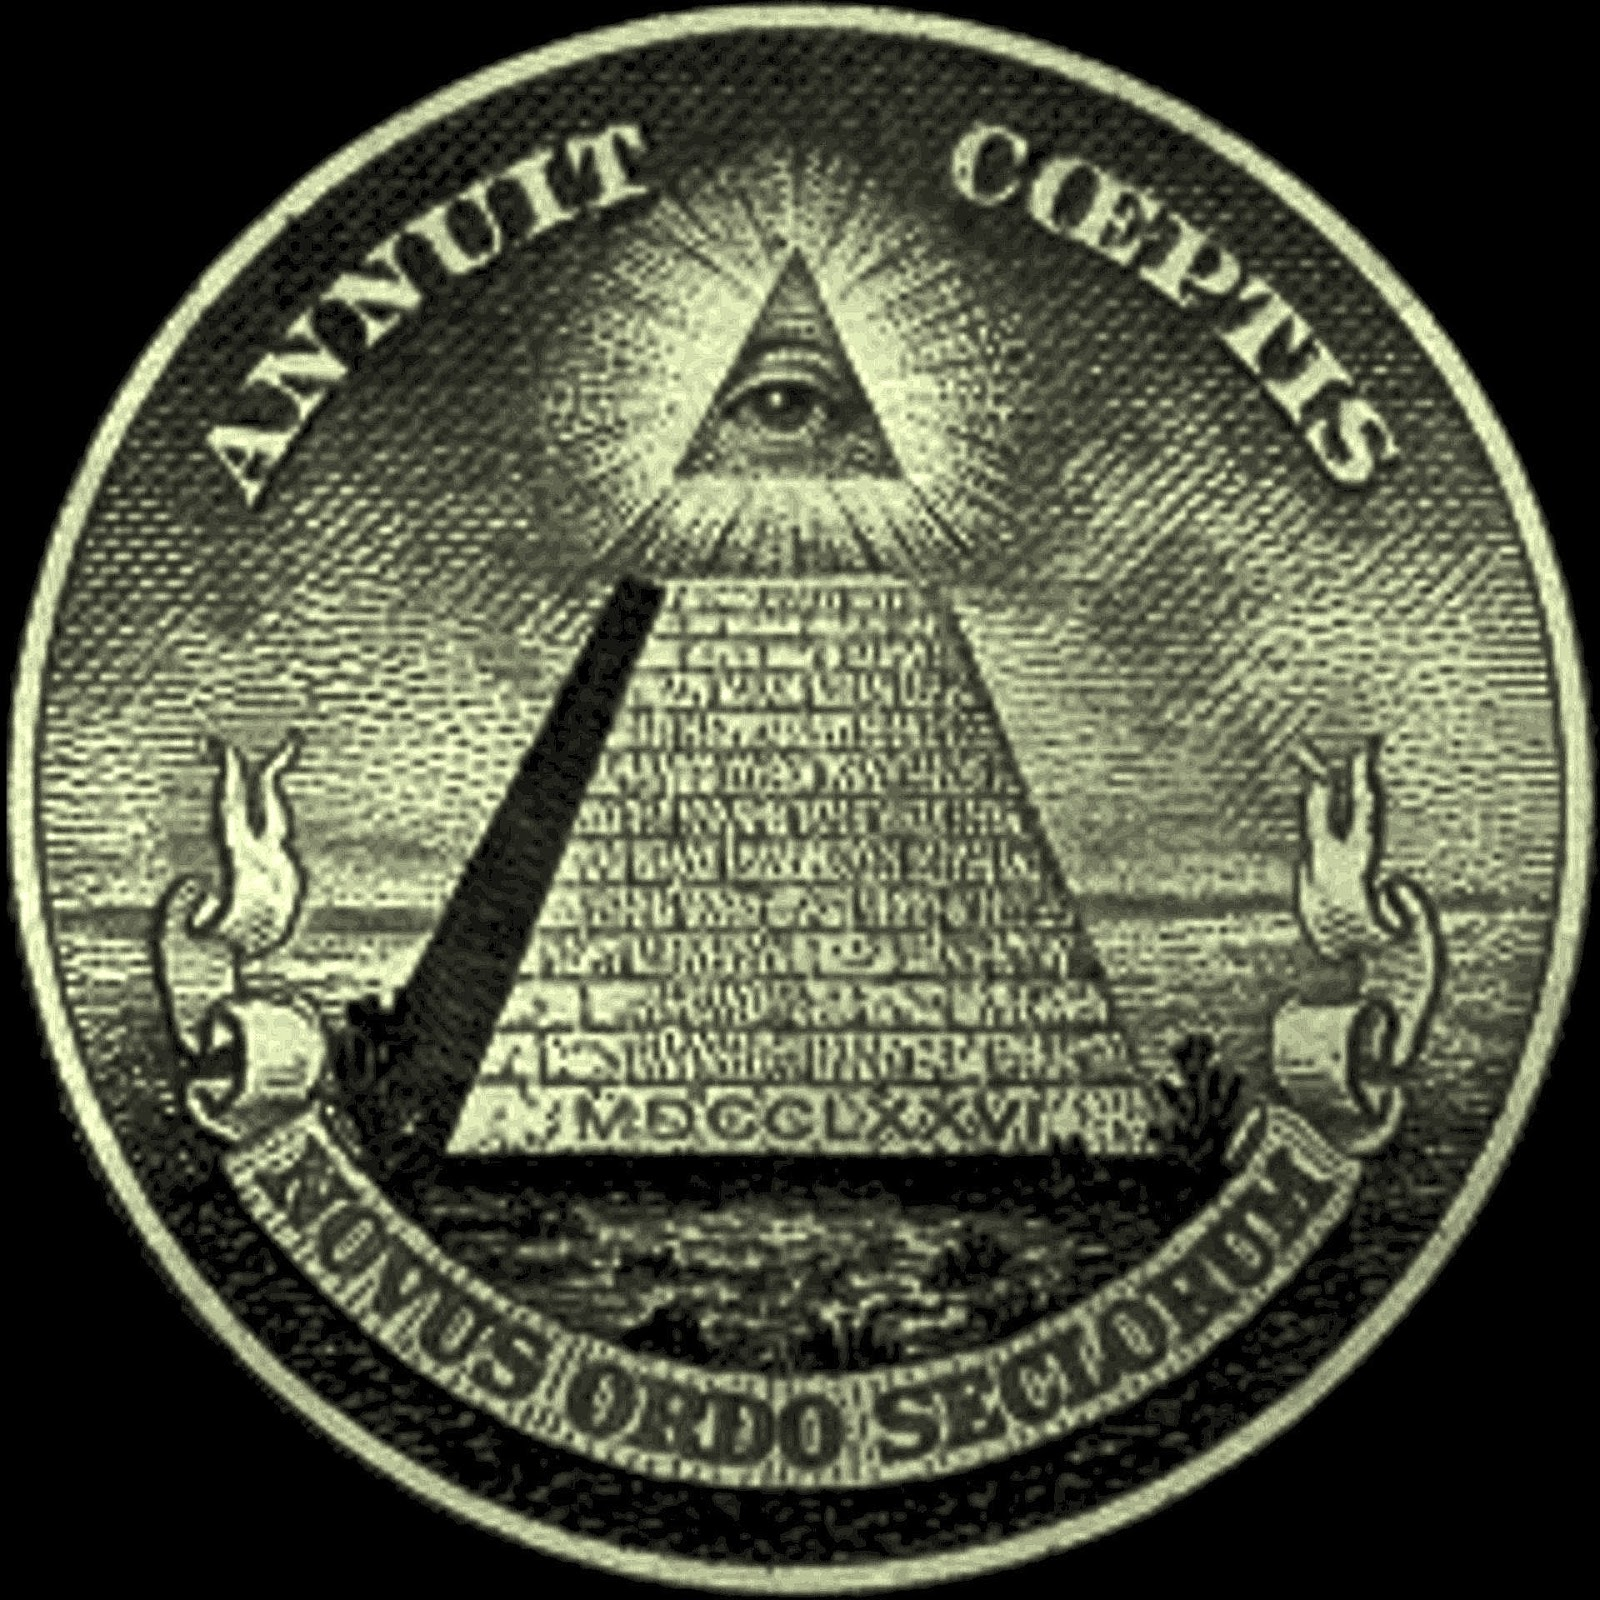 How to join the illuminati the new world order ccuart Images